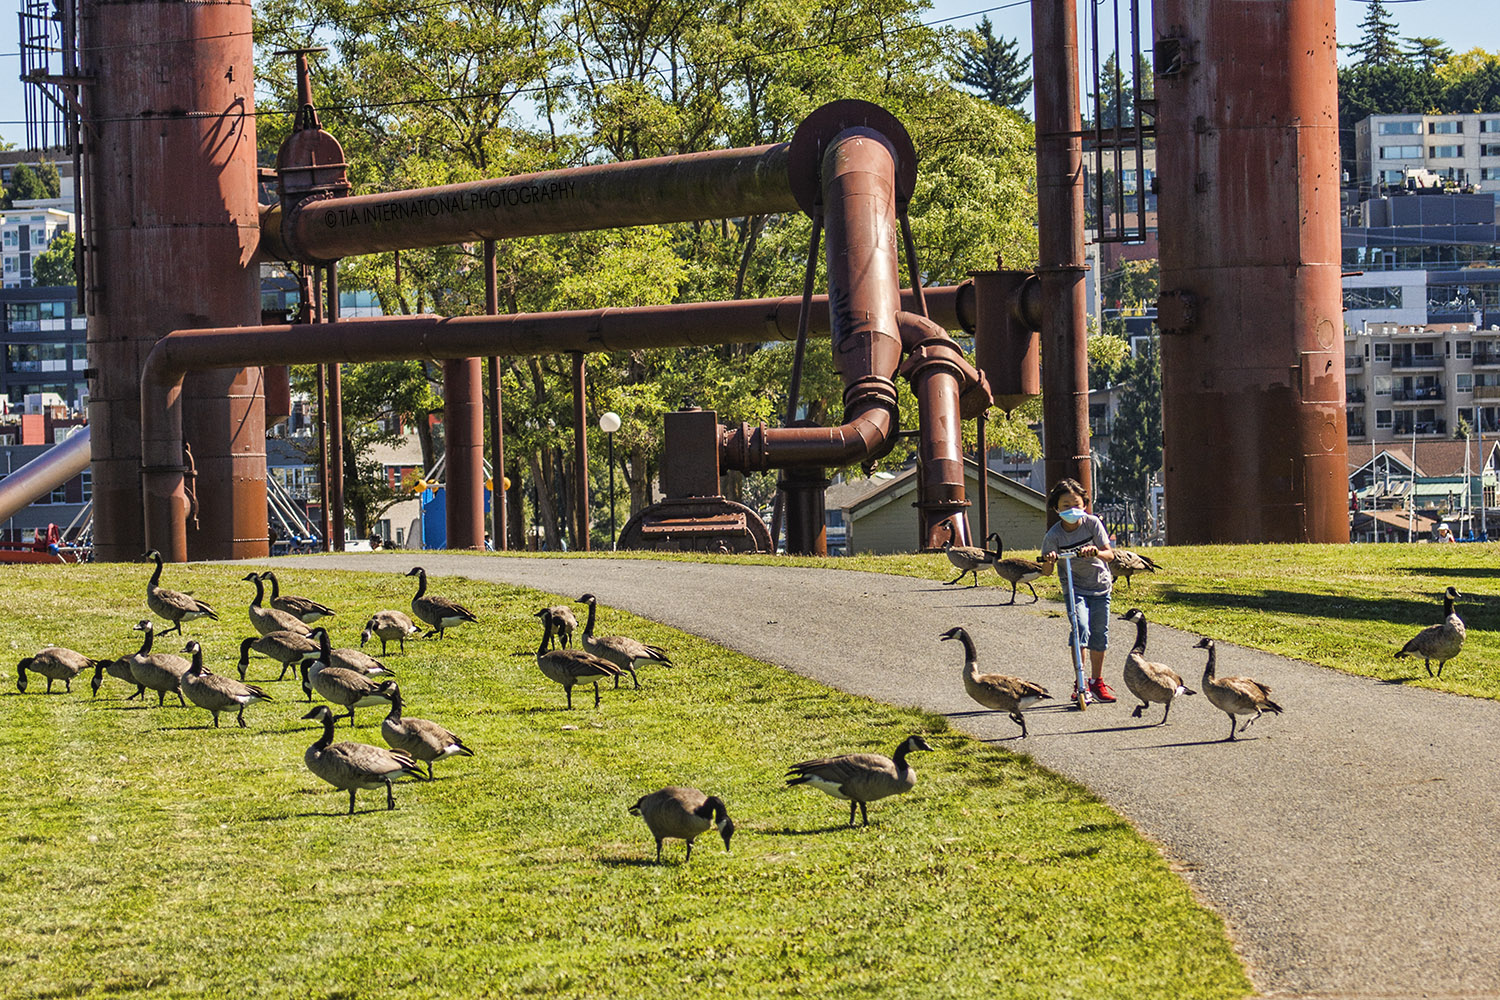 A child scoots along a path where geese cross at Gas Works Parks in Seattle. (September 2020)